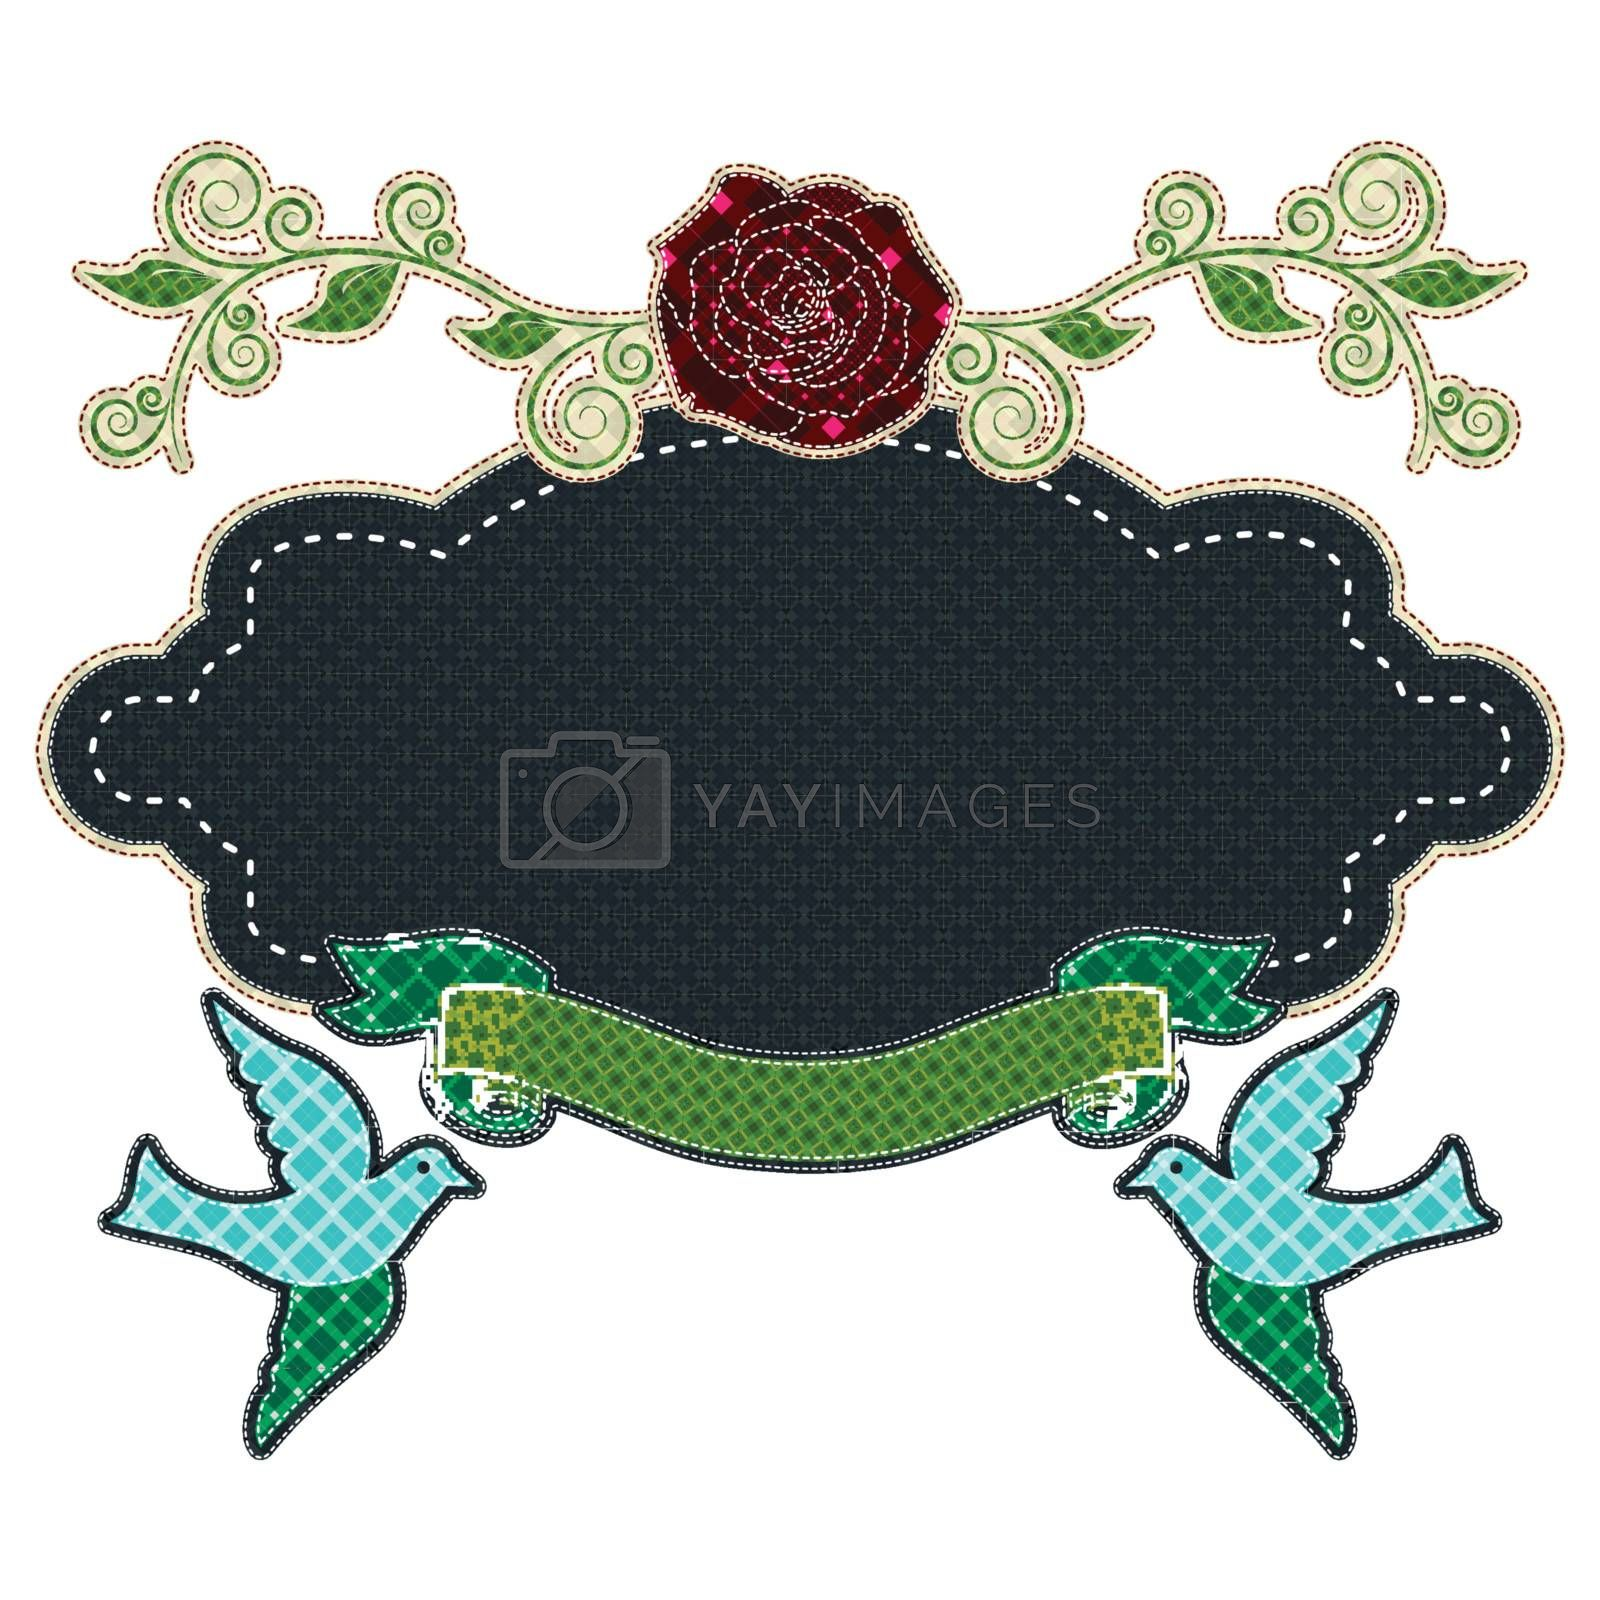 Illustrations patchwork of frame love with rose